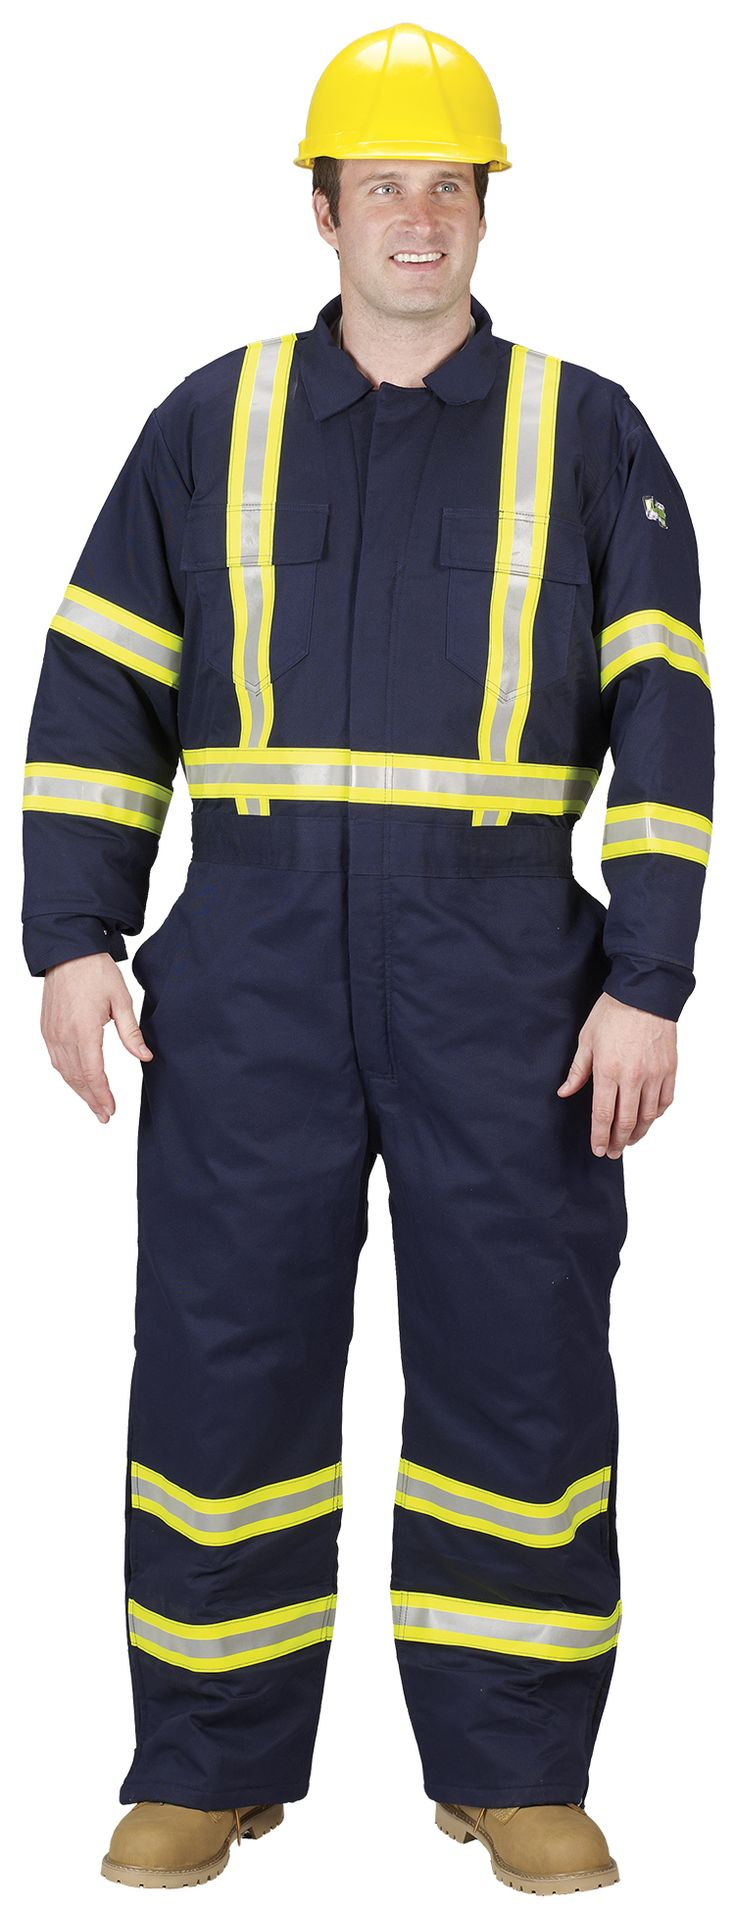 17 best images about insulated coveralls bibs what on insulated overalls for men id=29833